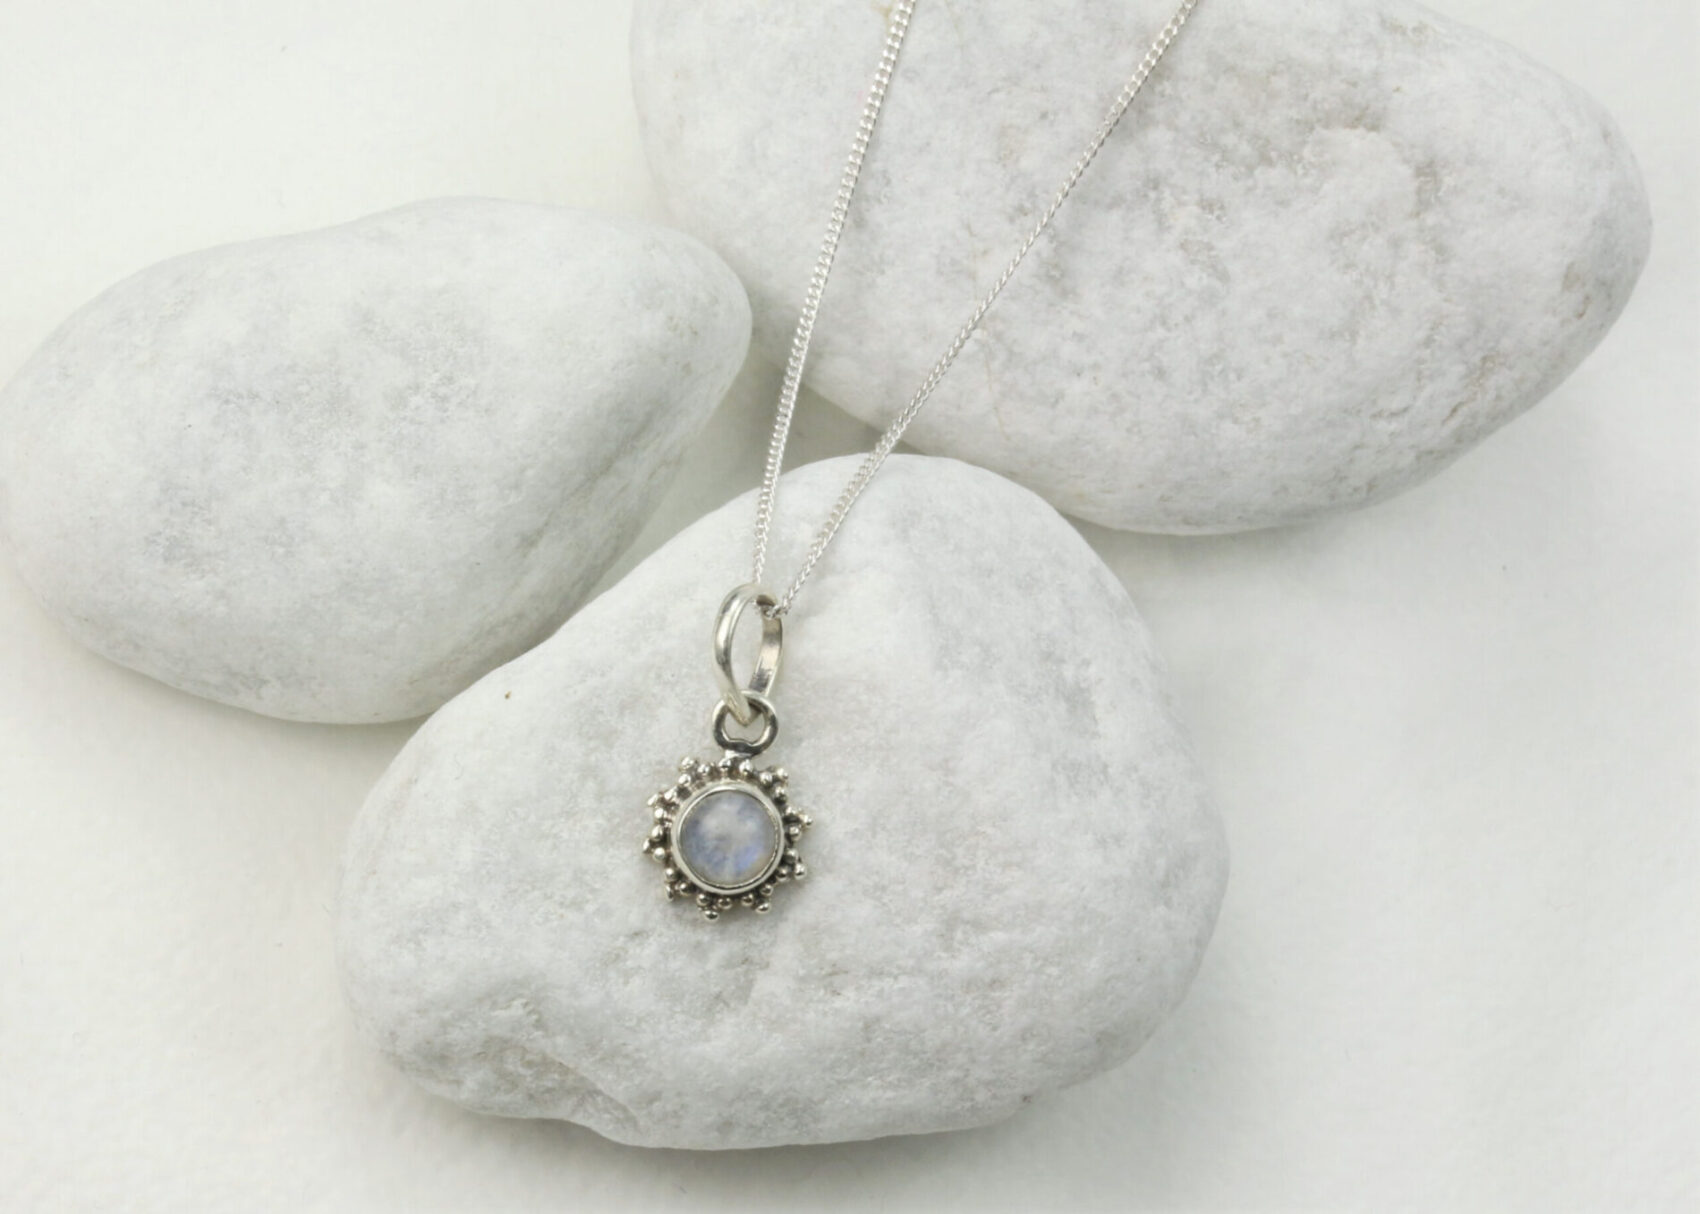 925 Sterling Silver curb chain with the 5mm Star Motif Turquoise charm necklace.